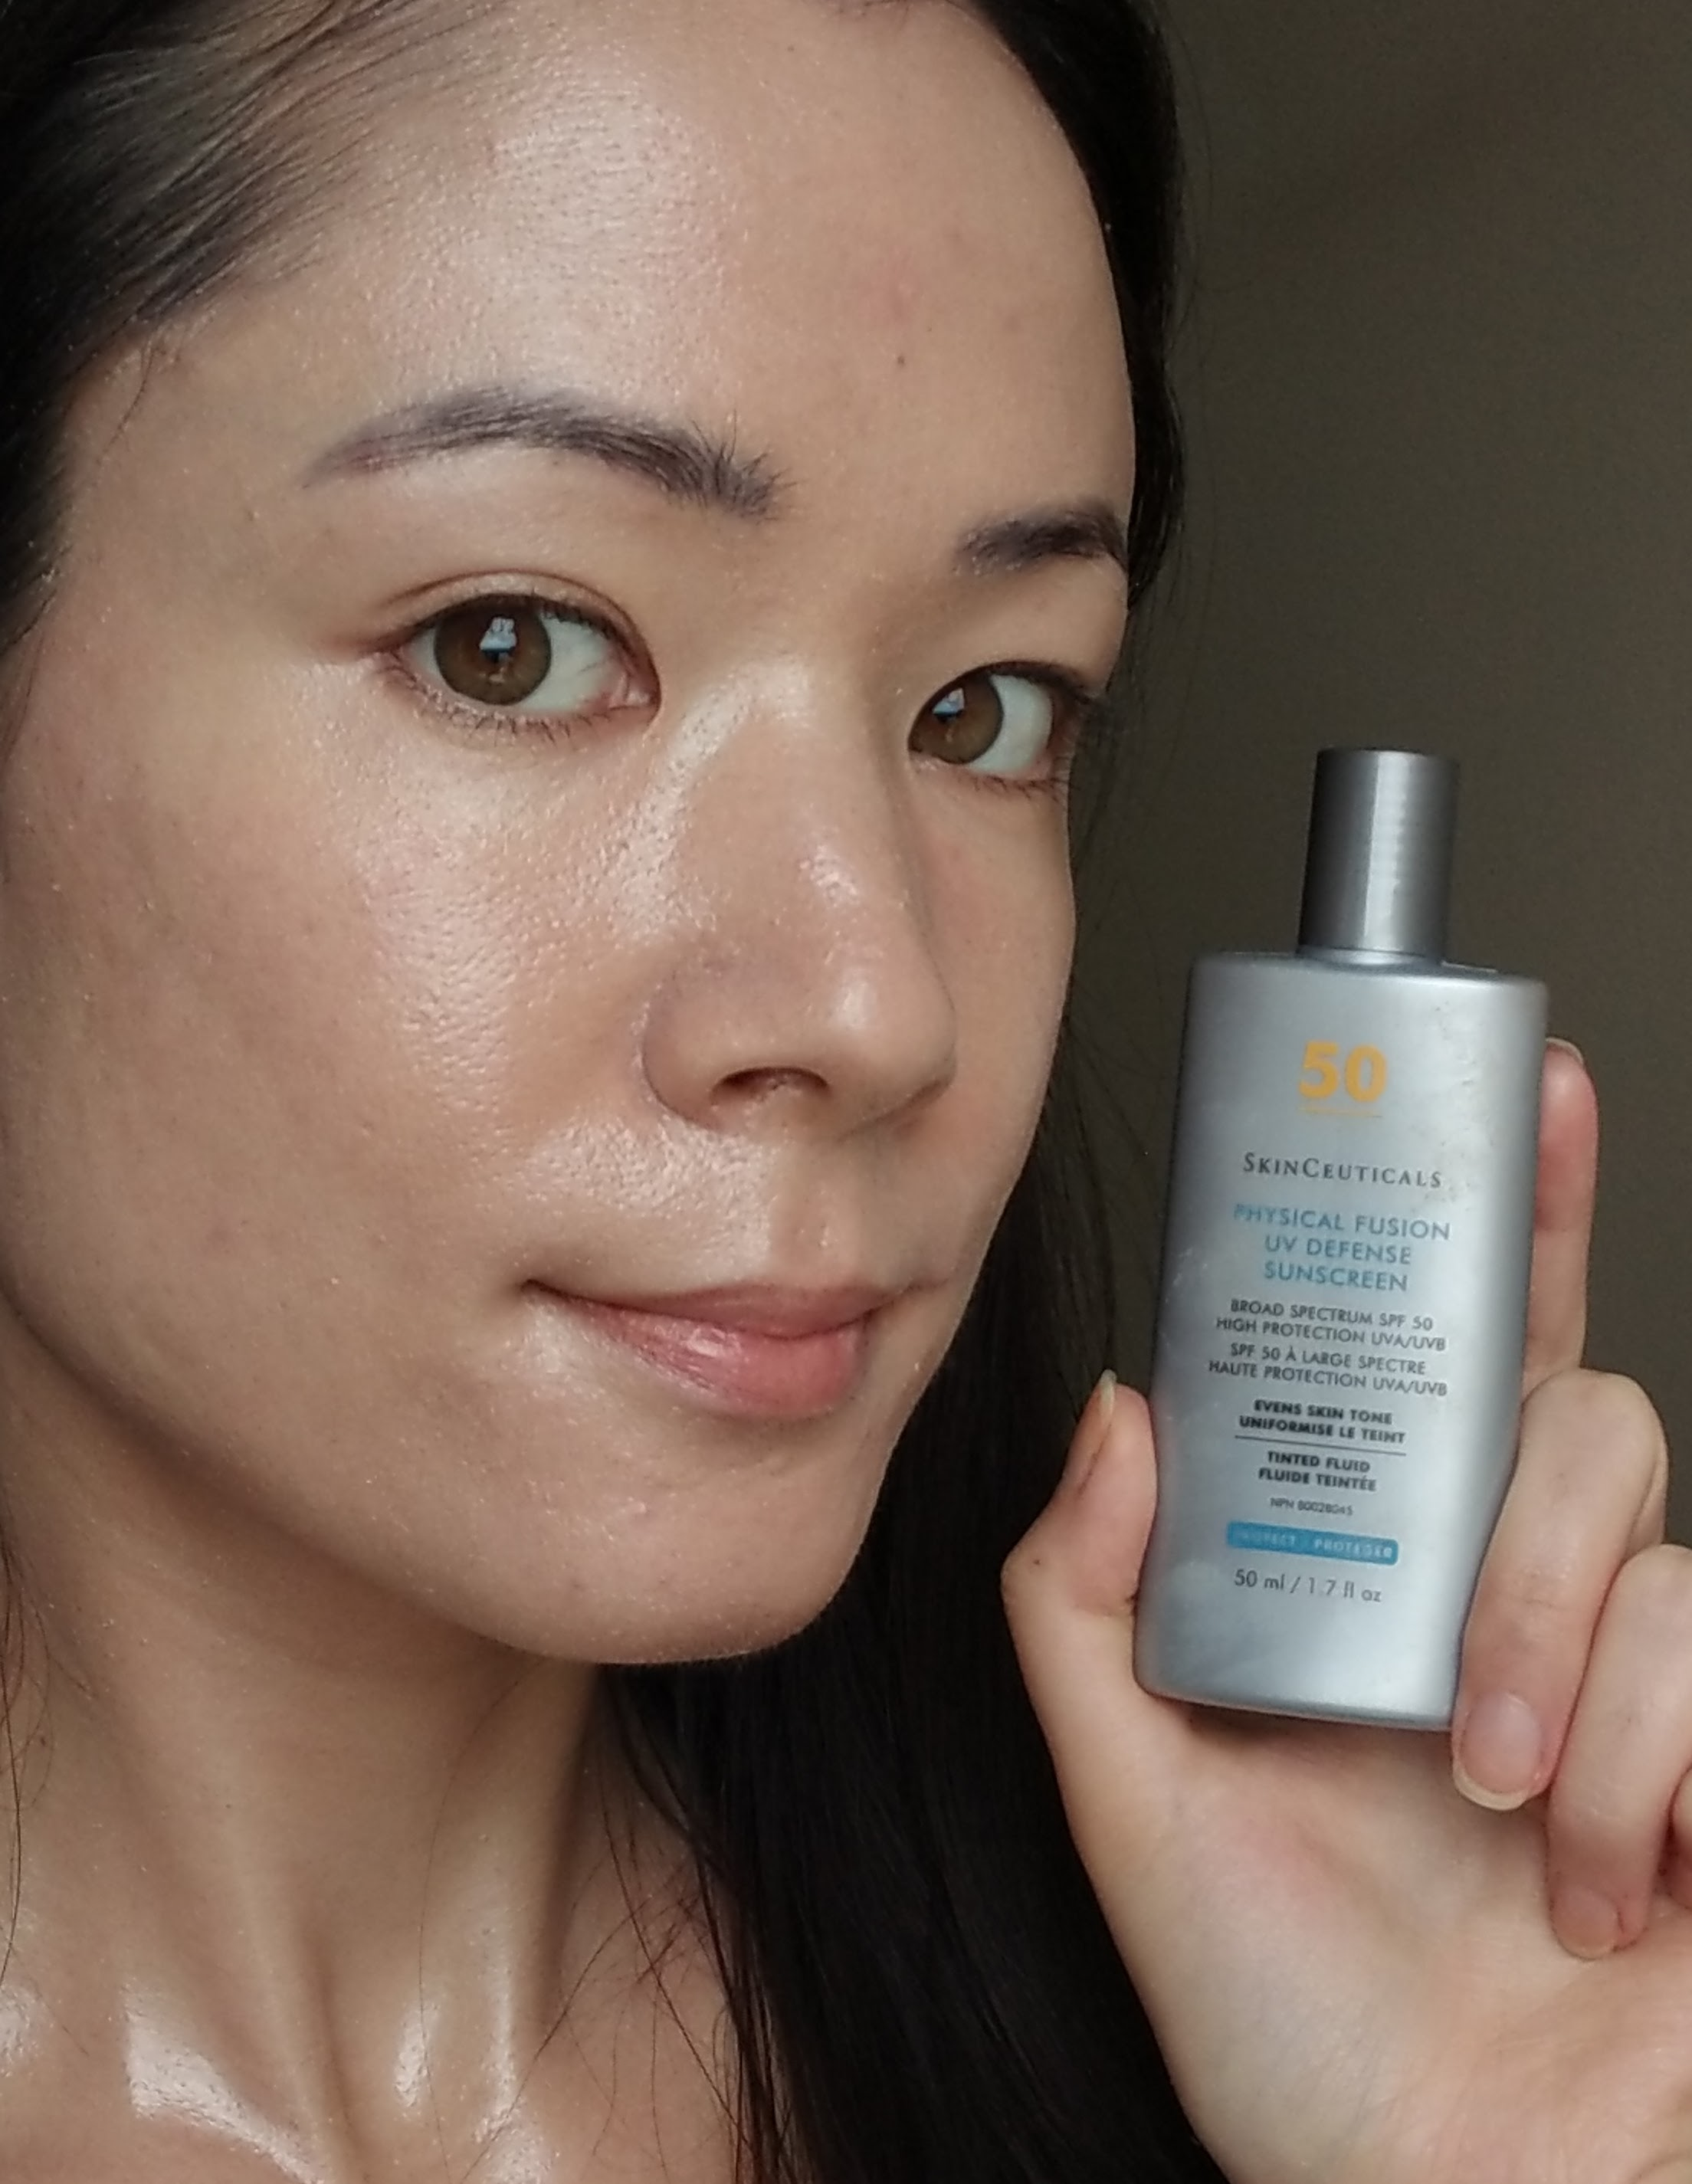 michxmash-skinceutical-physical-fusion-tinted-spf-skin-1